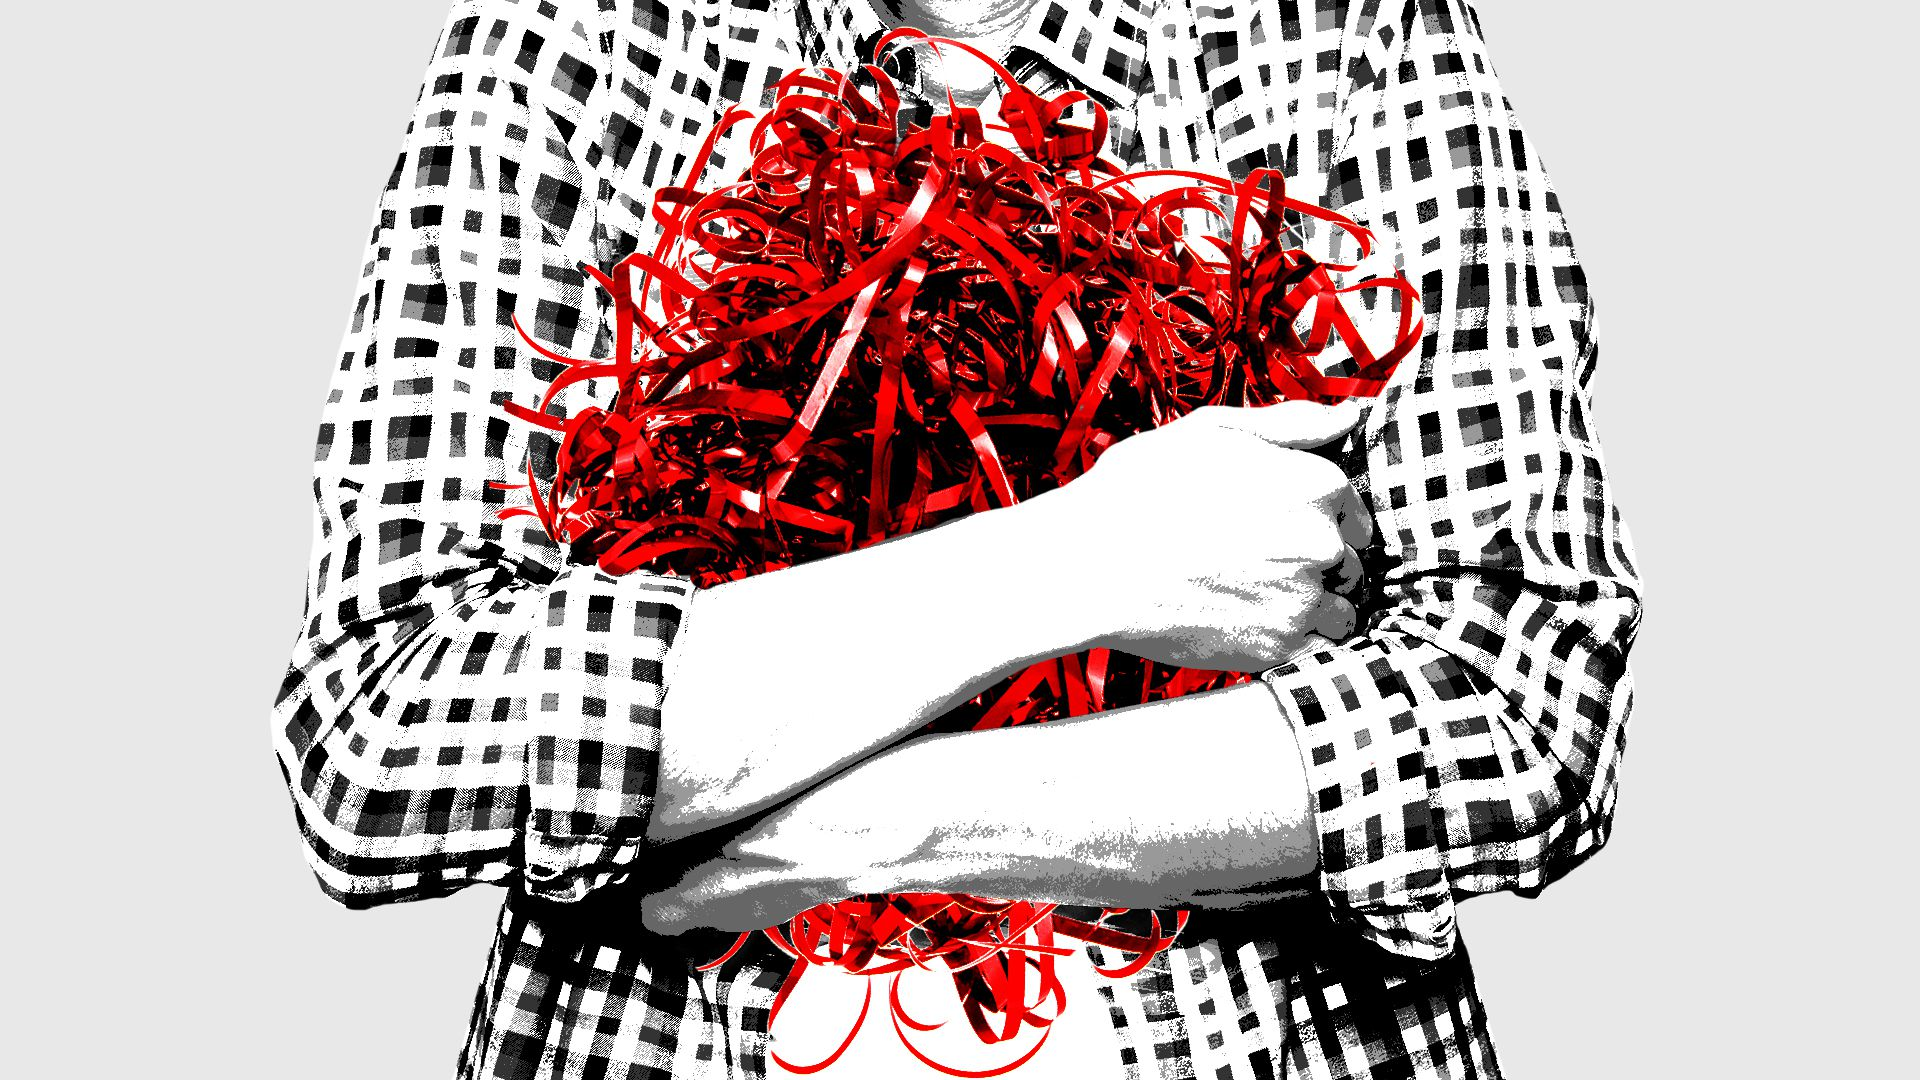 Illustration of someone clutching red tape